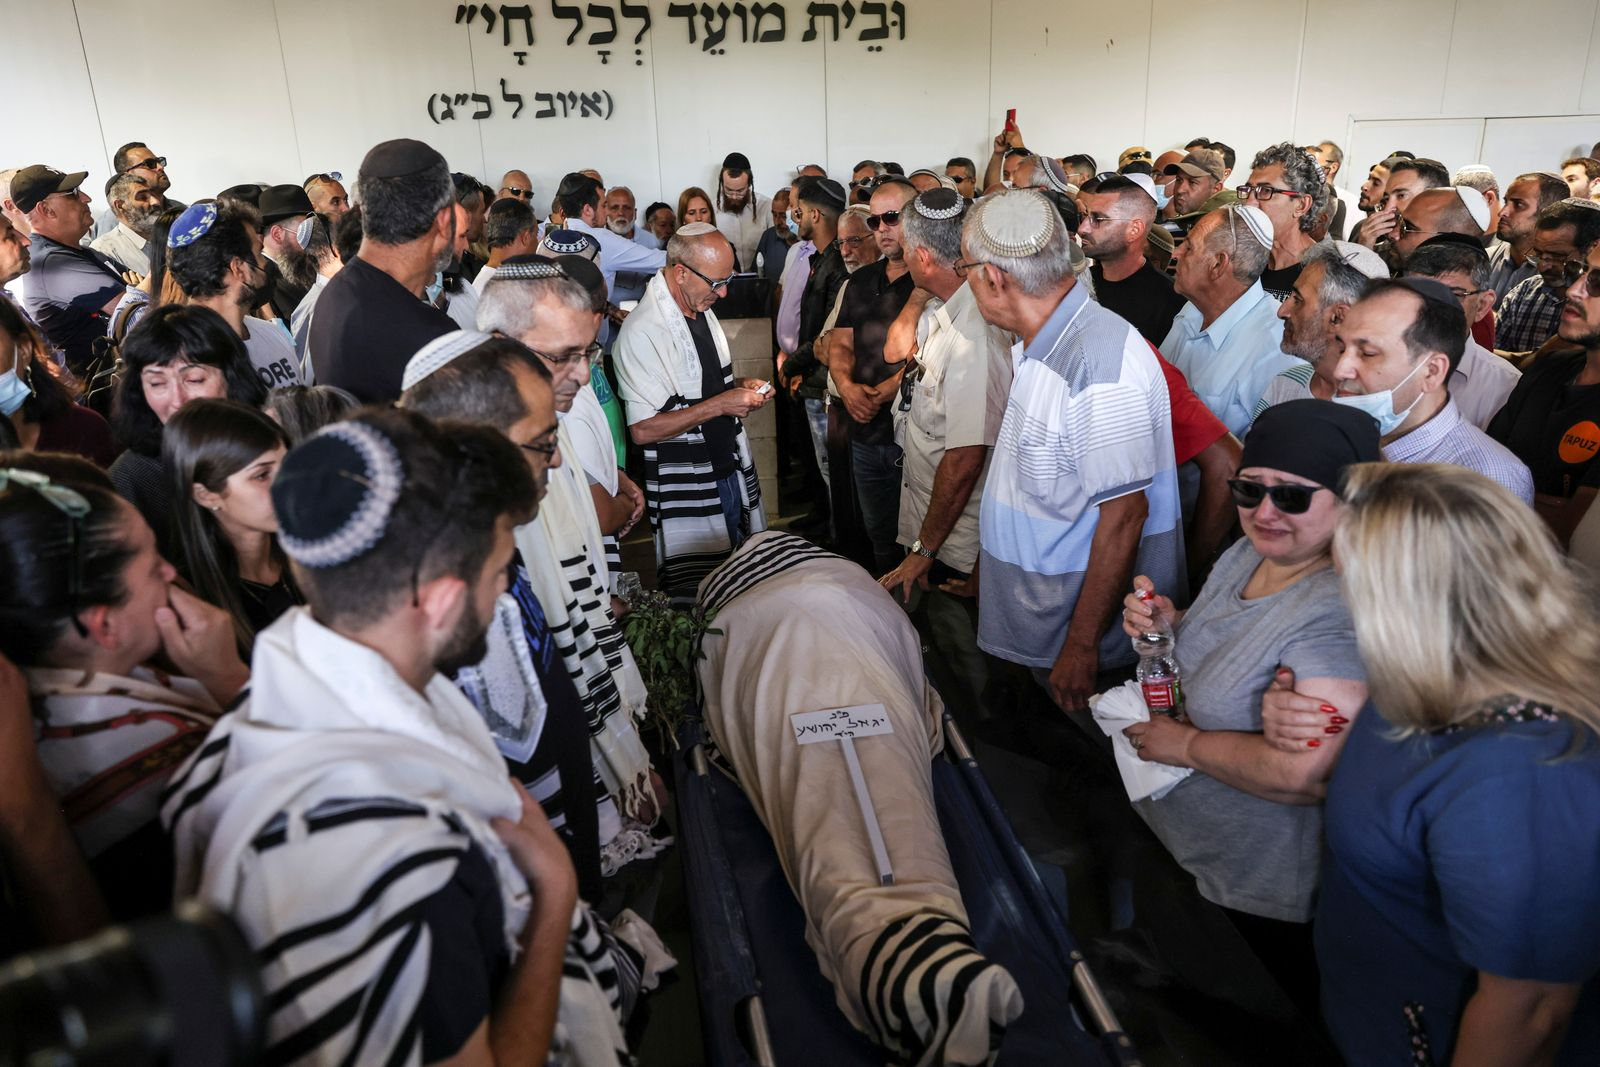 Funeral of Israeli man, Yigal Yehoshua, who died after succumbing to his wounds, sustained during Arab-Jewish violence in the mixed city of Lod, at a cemetery in Moshav Hadid